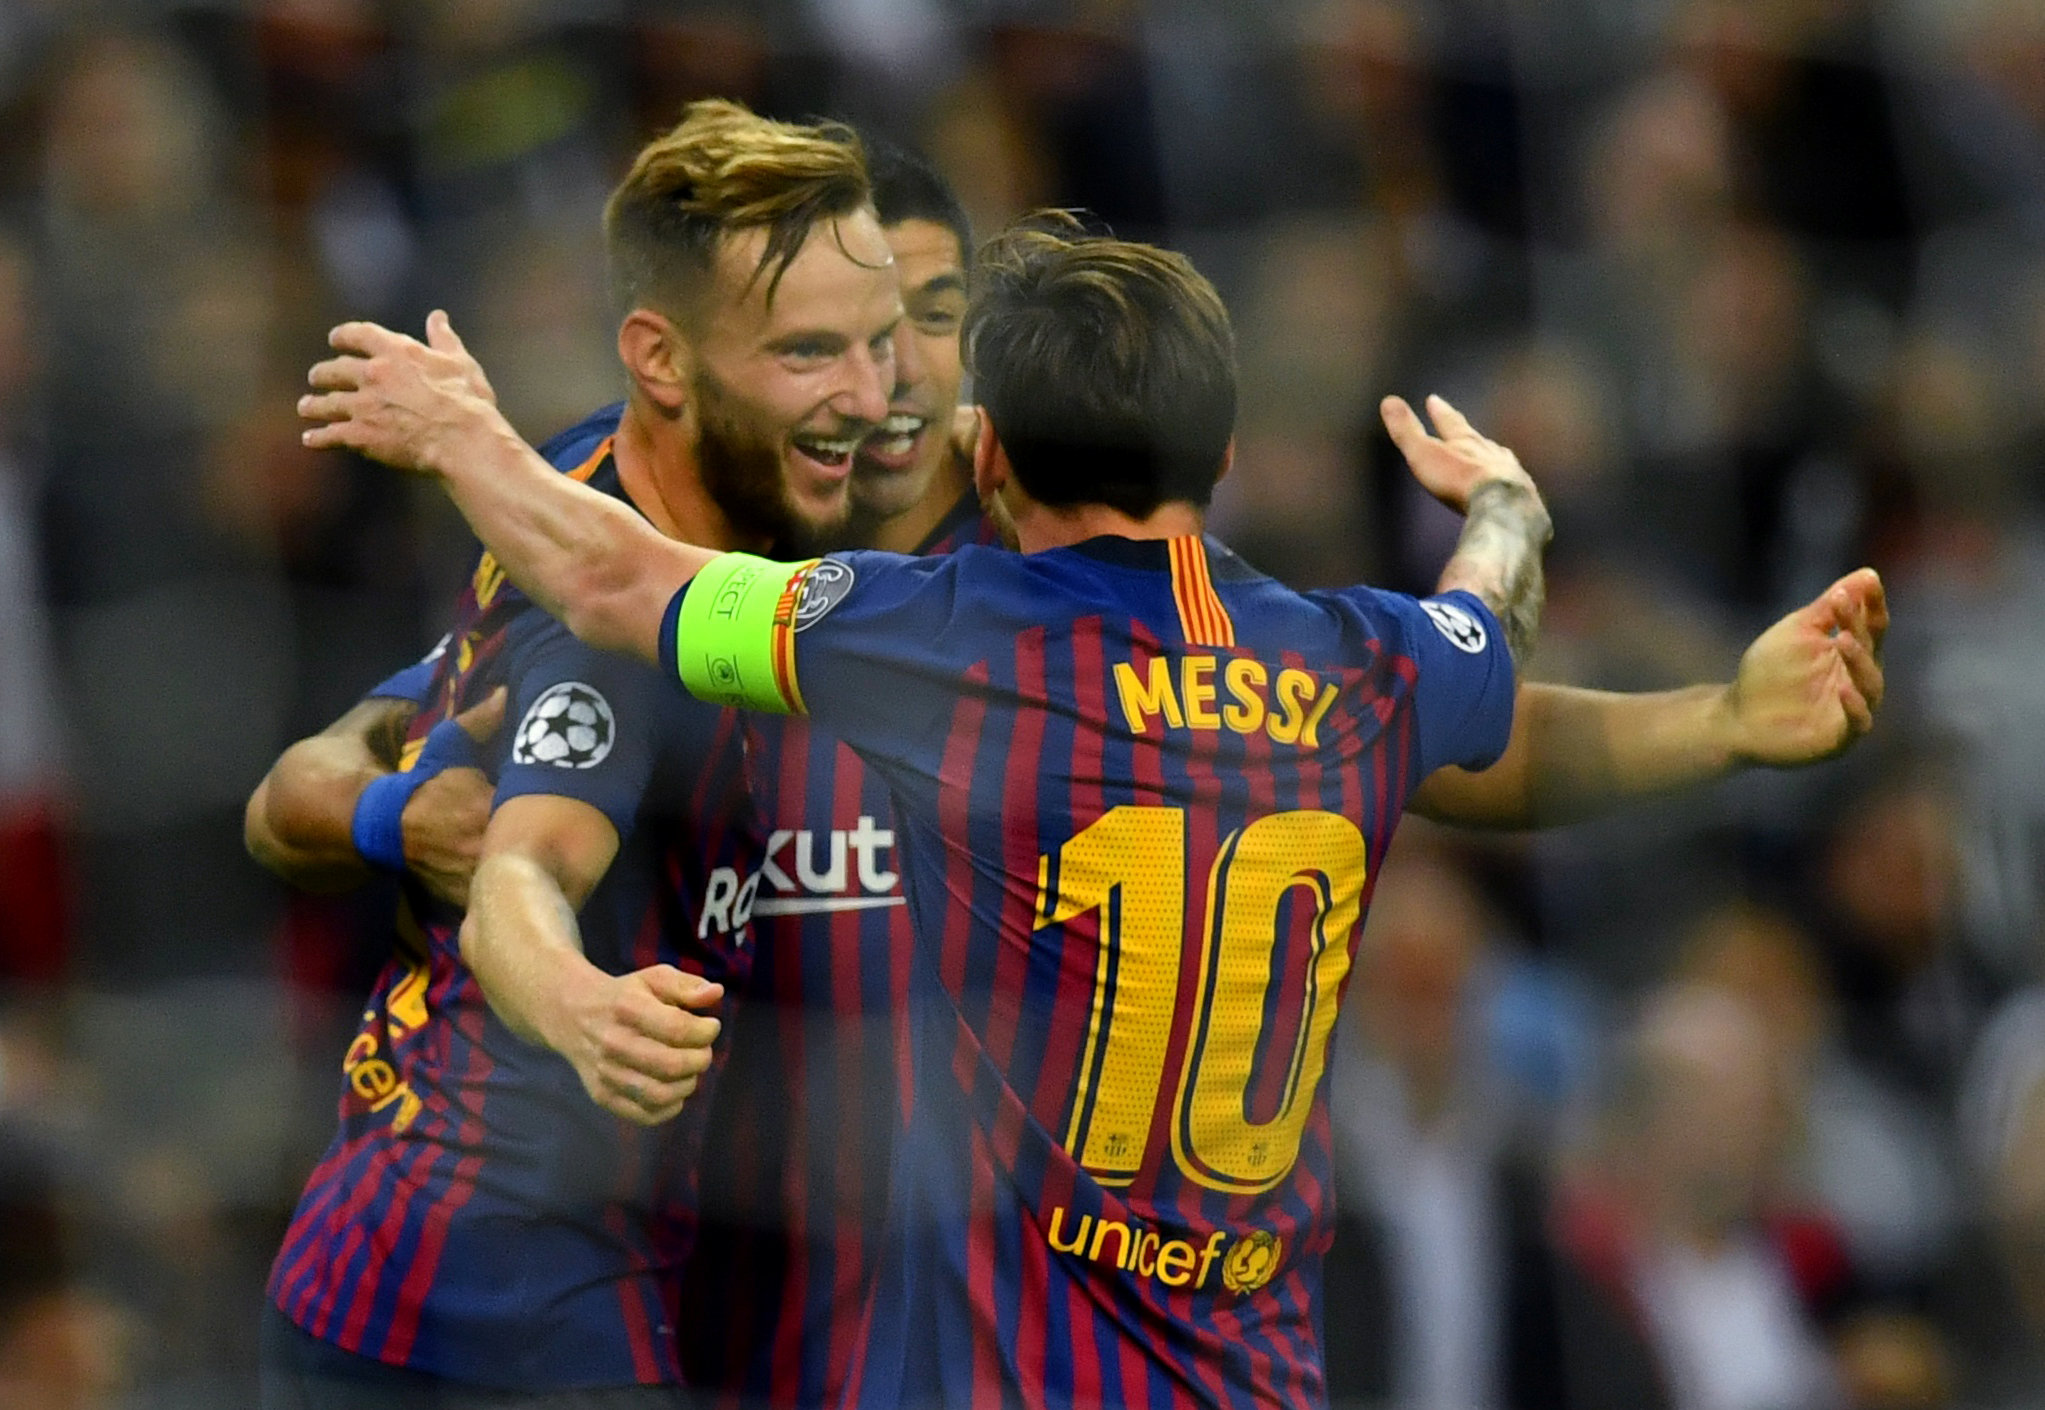 Soccer Football - Champions League - Group Stage - Group B - Tottenham Hotspur v FC Barcelona - Wembley Stadium, London, Britain - October 3, 2018  Barcelona's Ivan Rakitic celebrates with Lionel Messi after scoring their second goal   REUTERS/Dylan Martinez